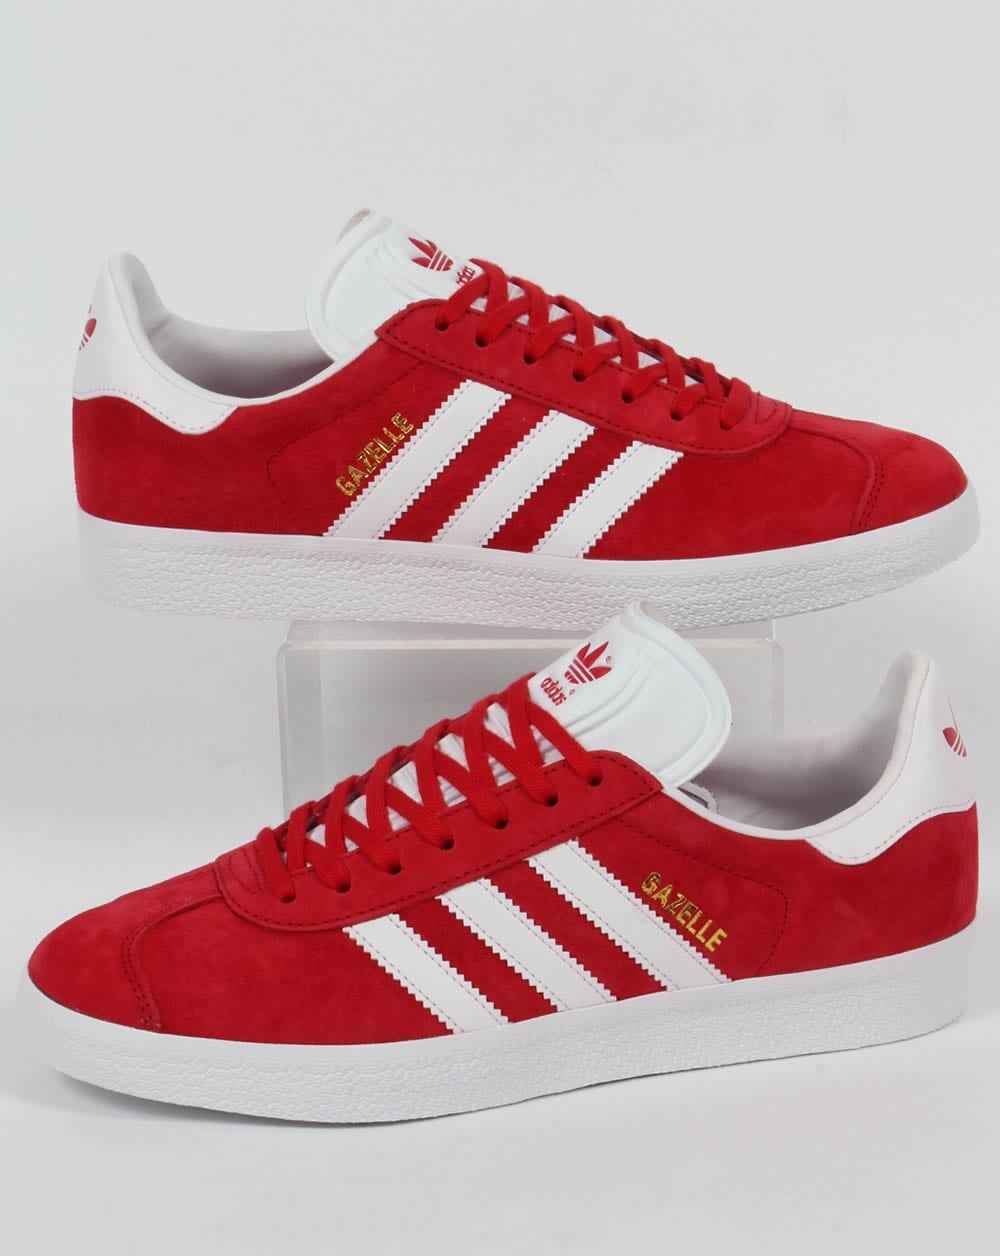 adidas Trainers Adidas Gazelle Trainers Power Red White 87a282e657